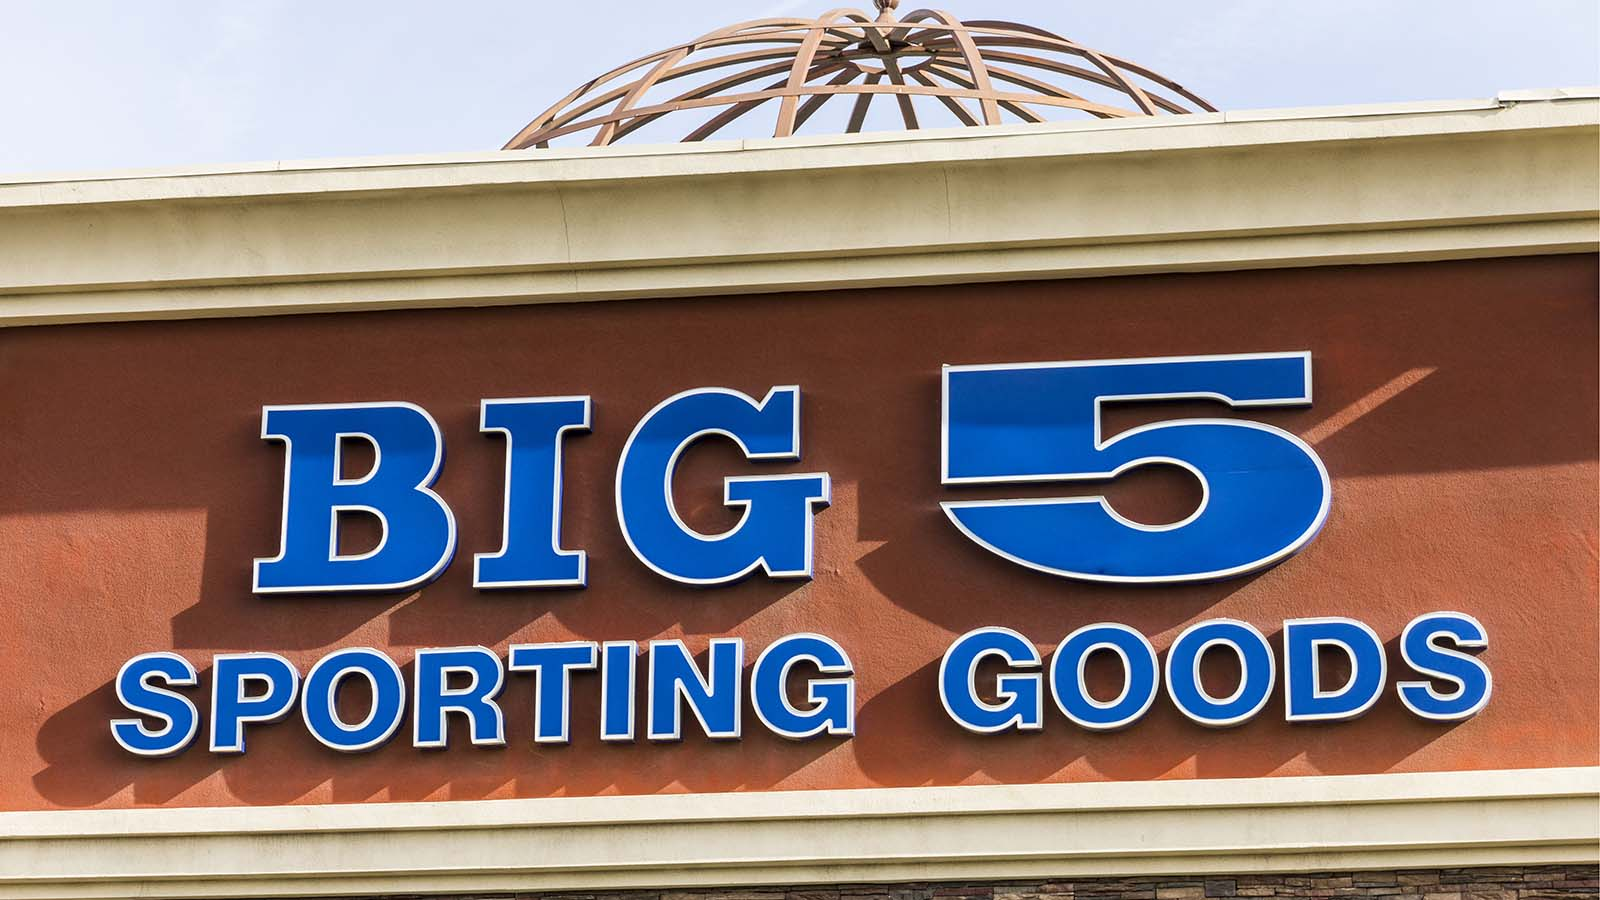 Big5 Sporting Goods